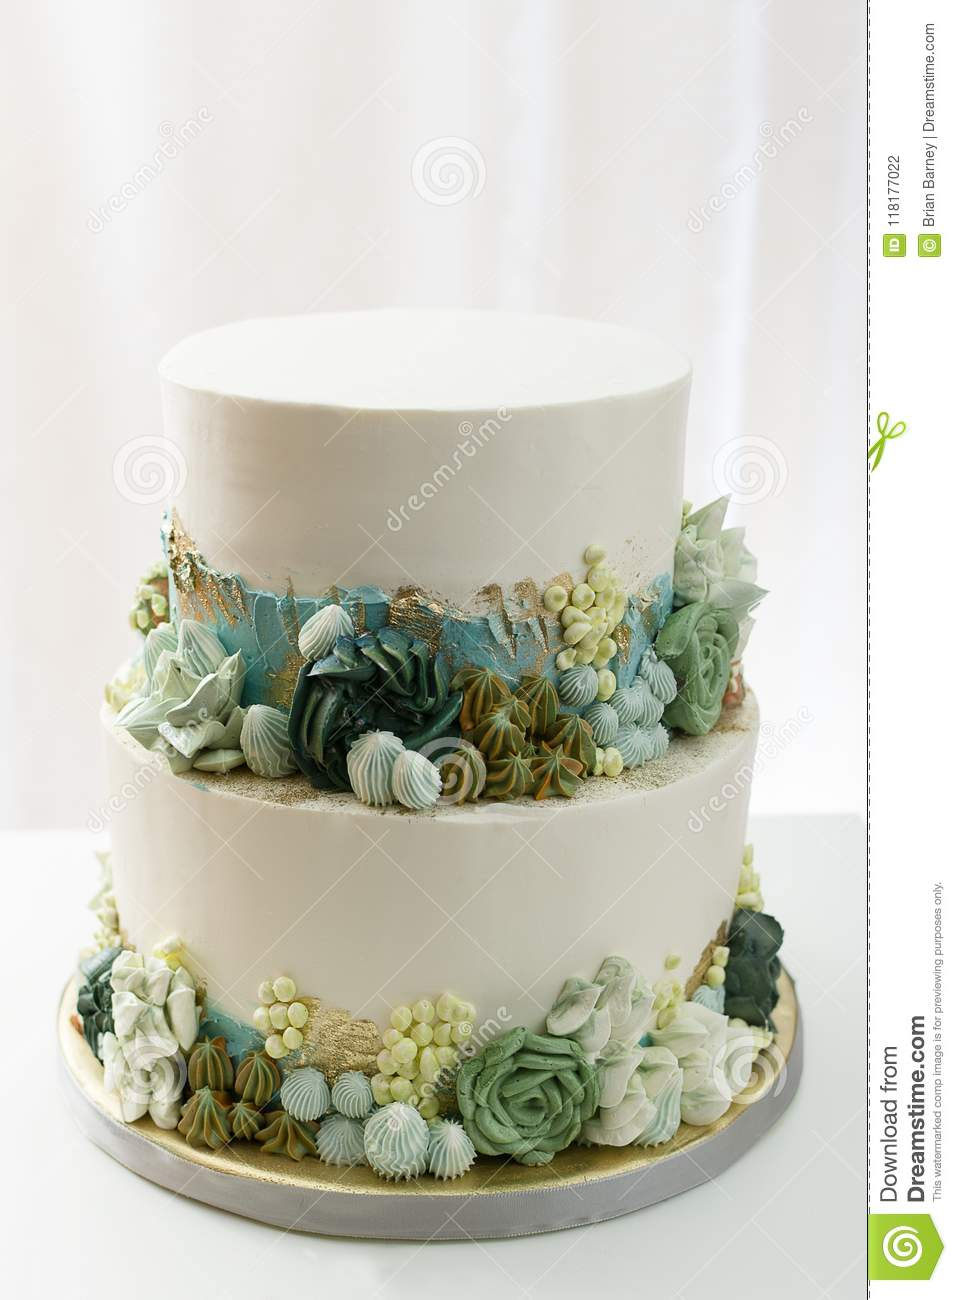 2 Tier Wedding Cake | 2 Tier Wedding Cake With Butter Cream Floral Accents Stock Photo